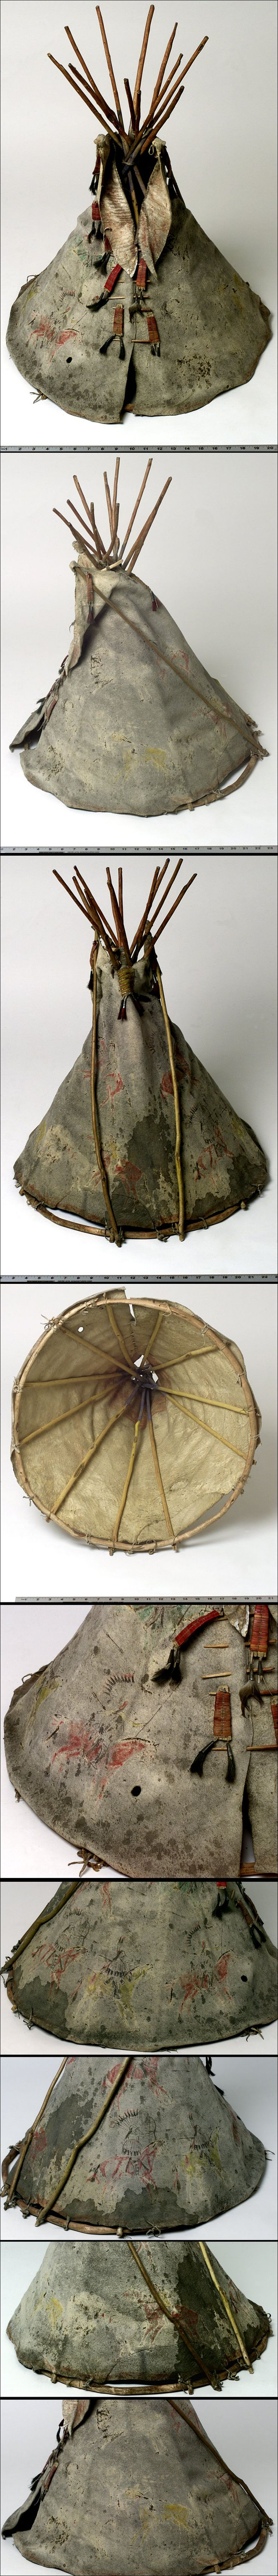 Lakota game (tipi toy), from Fr. Bucherel Collection